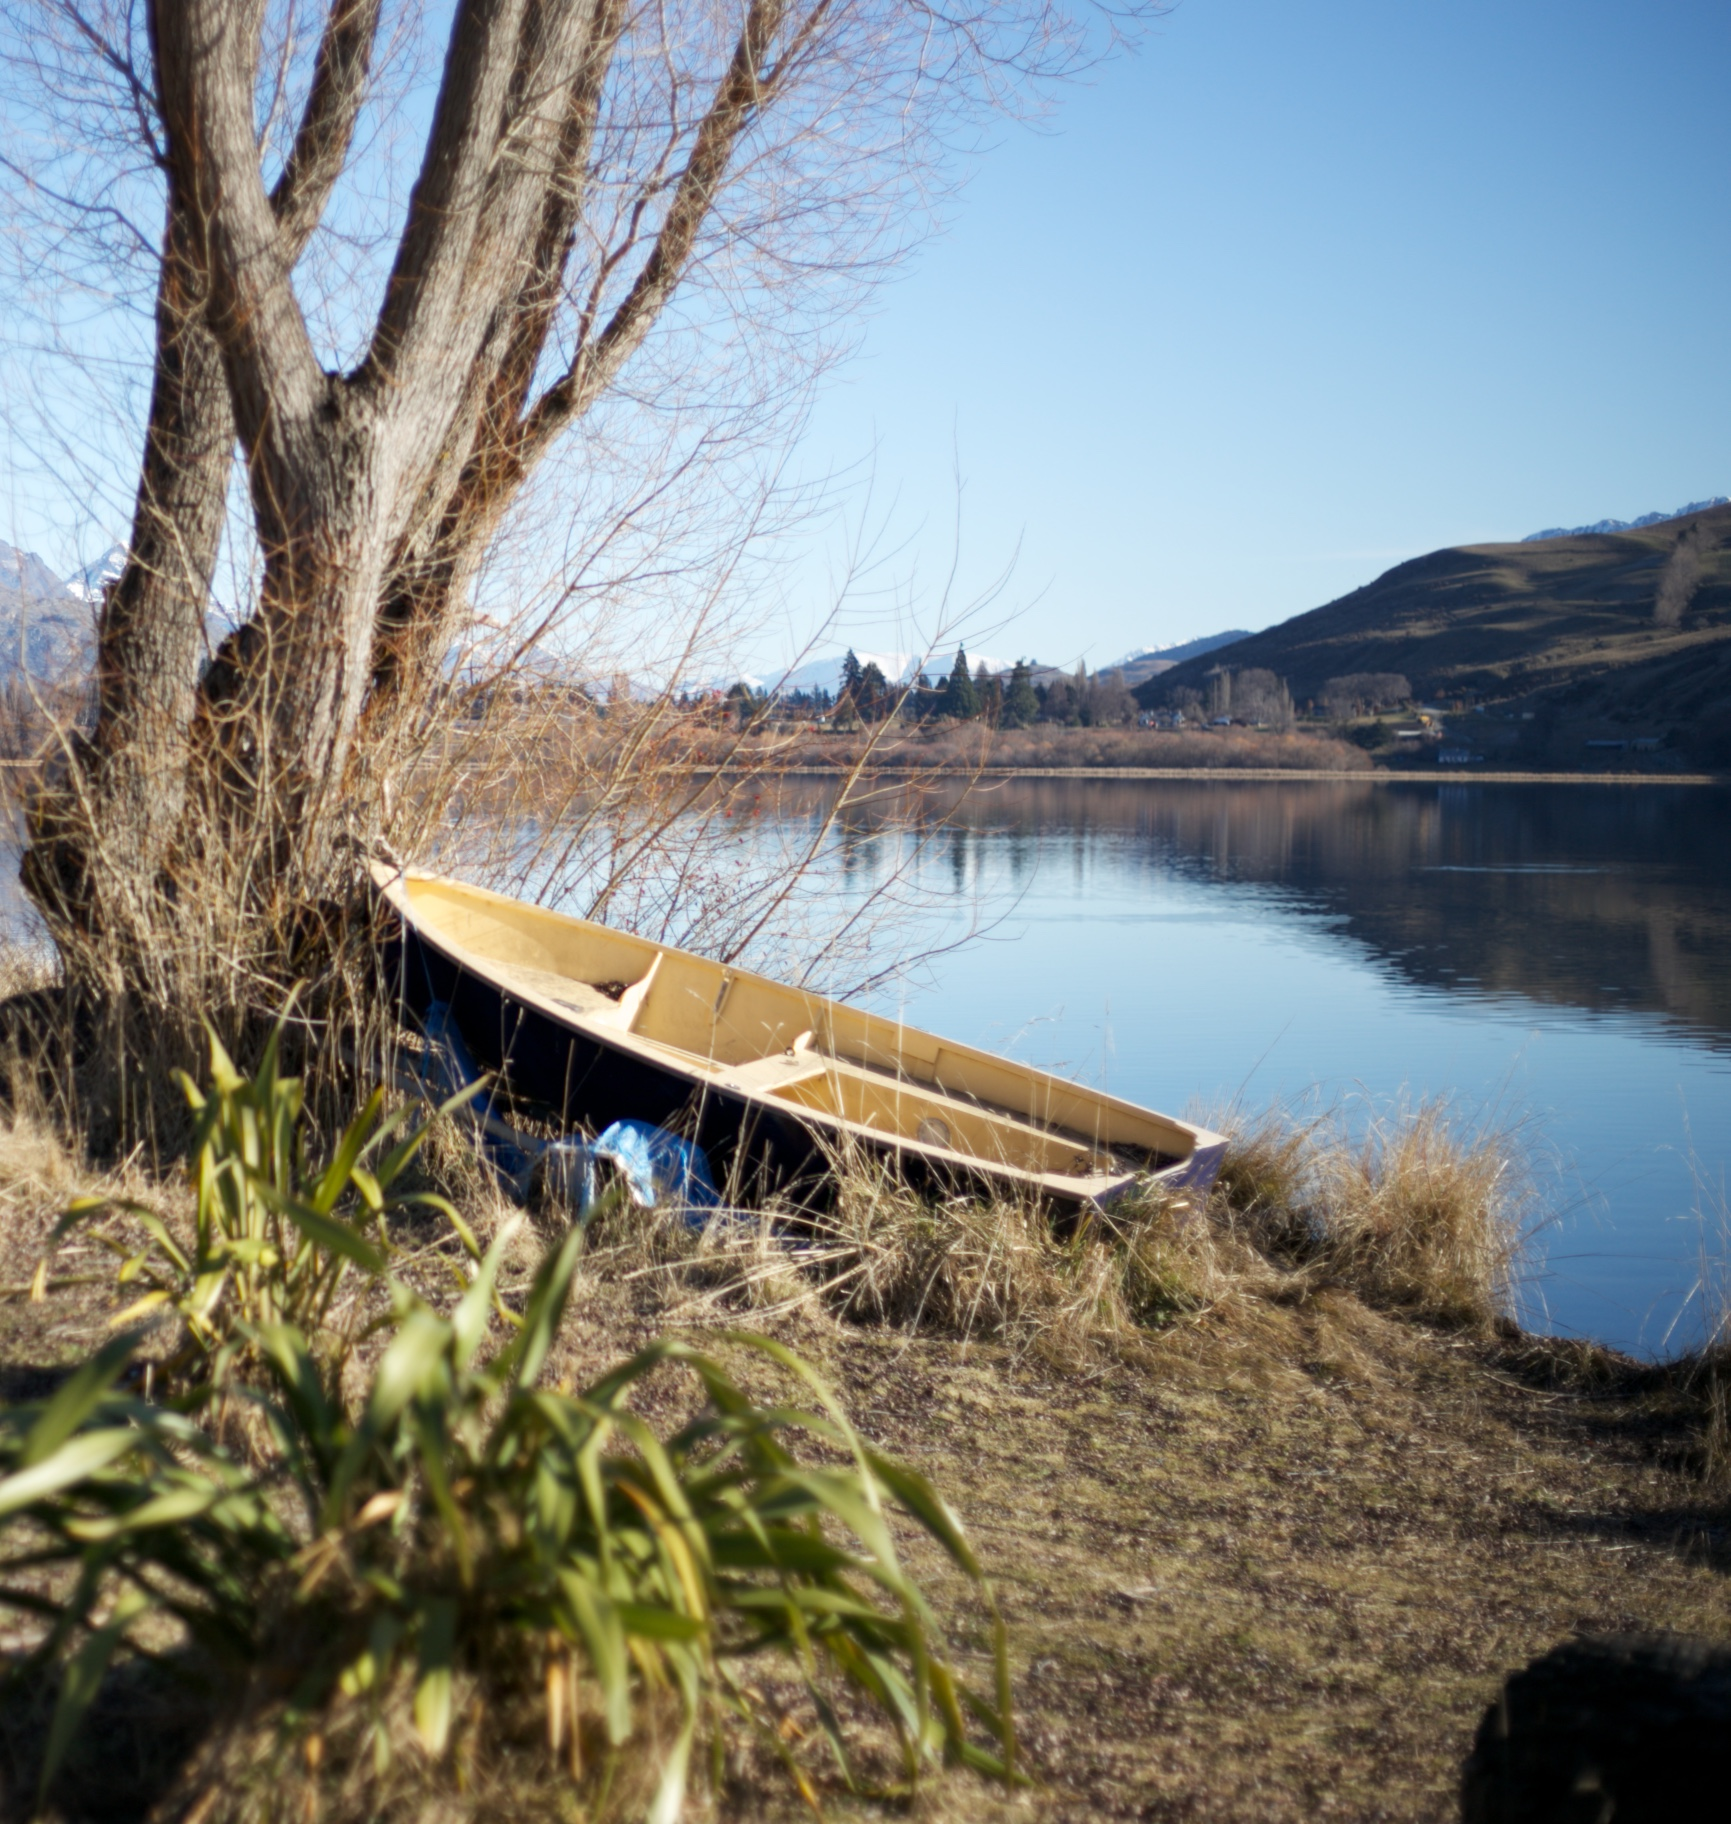 A boat by a lake - NZ the real middle earth.